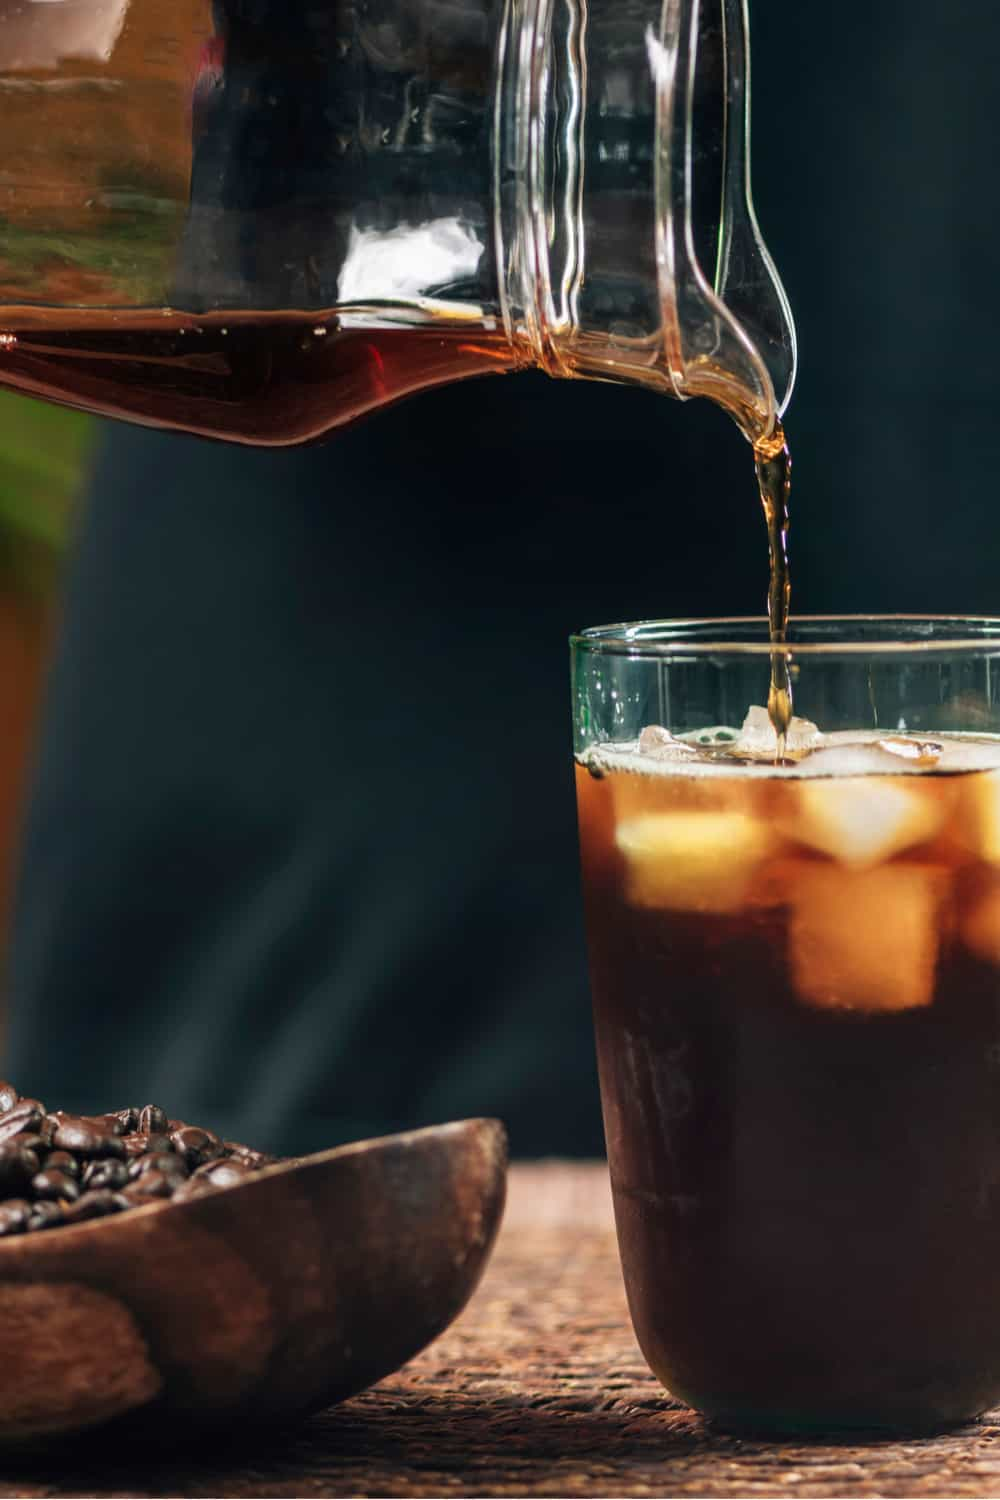 Iced Coffee Vs Cold Brew - Which tastes better